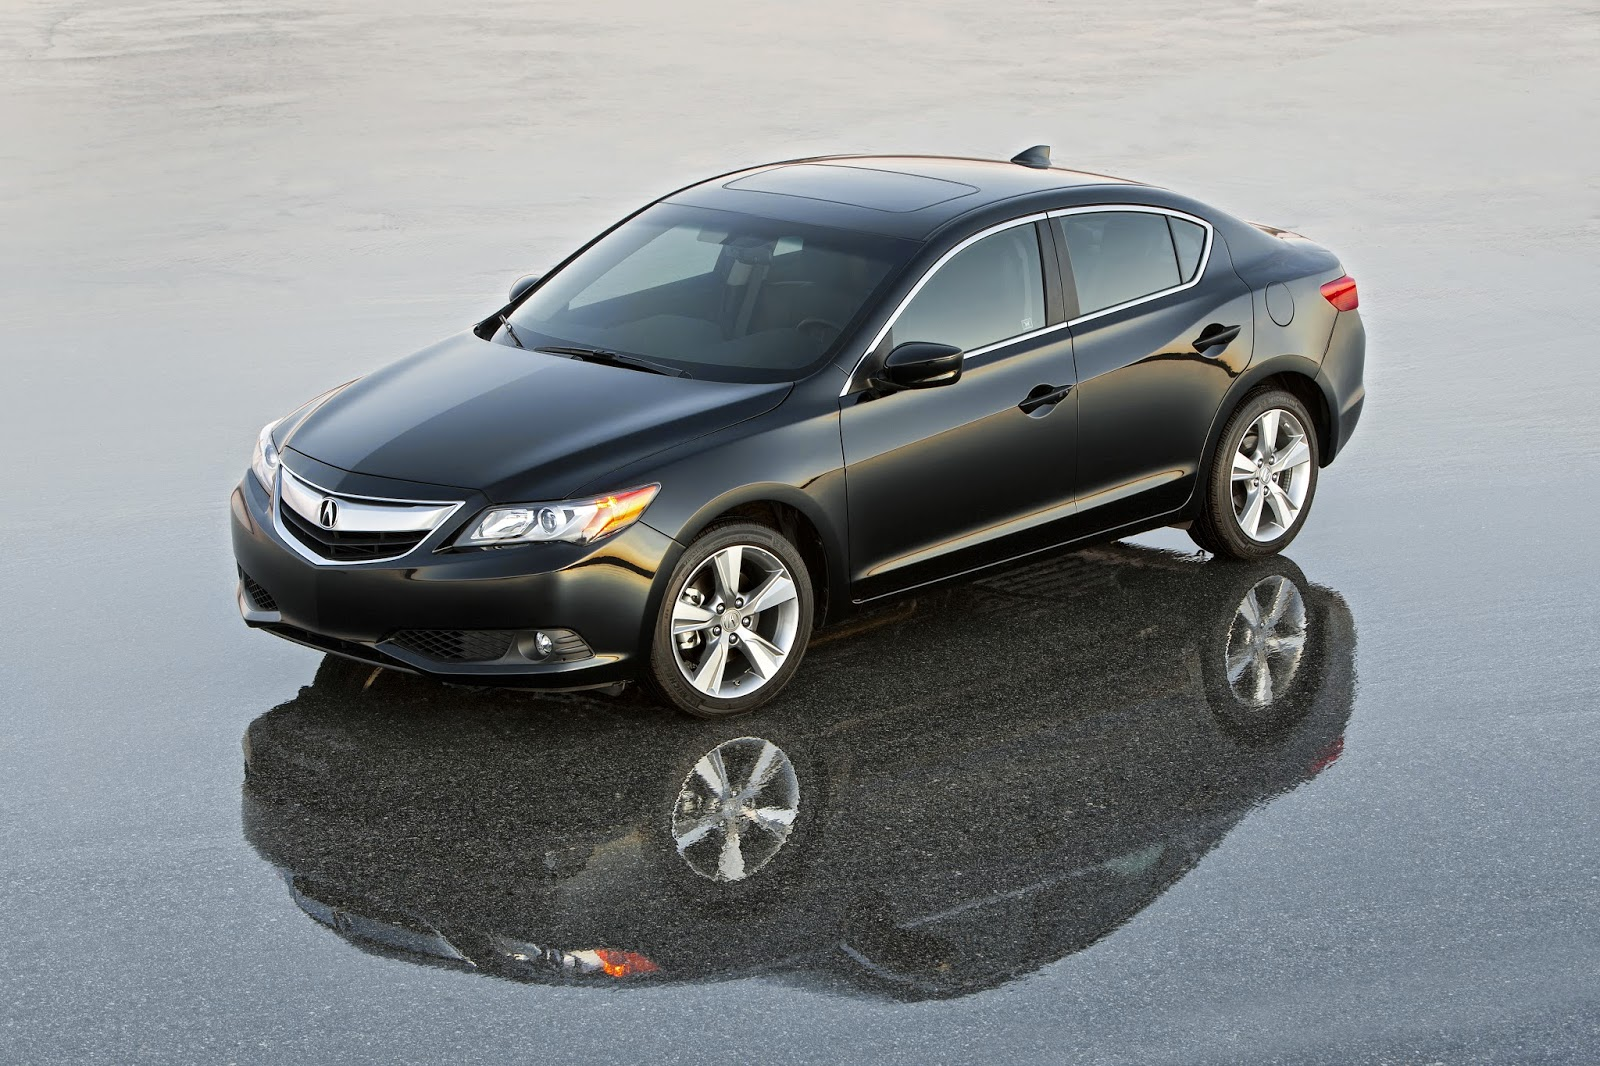 Front 3/4 view of the 2014 Acura ILX Premium